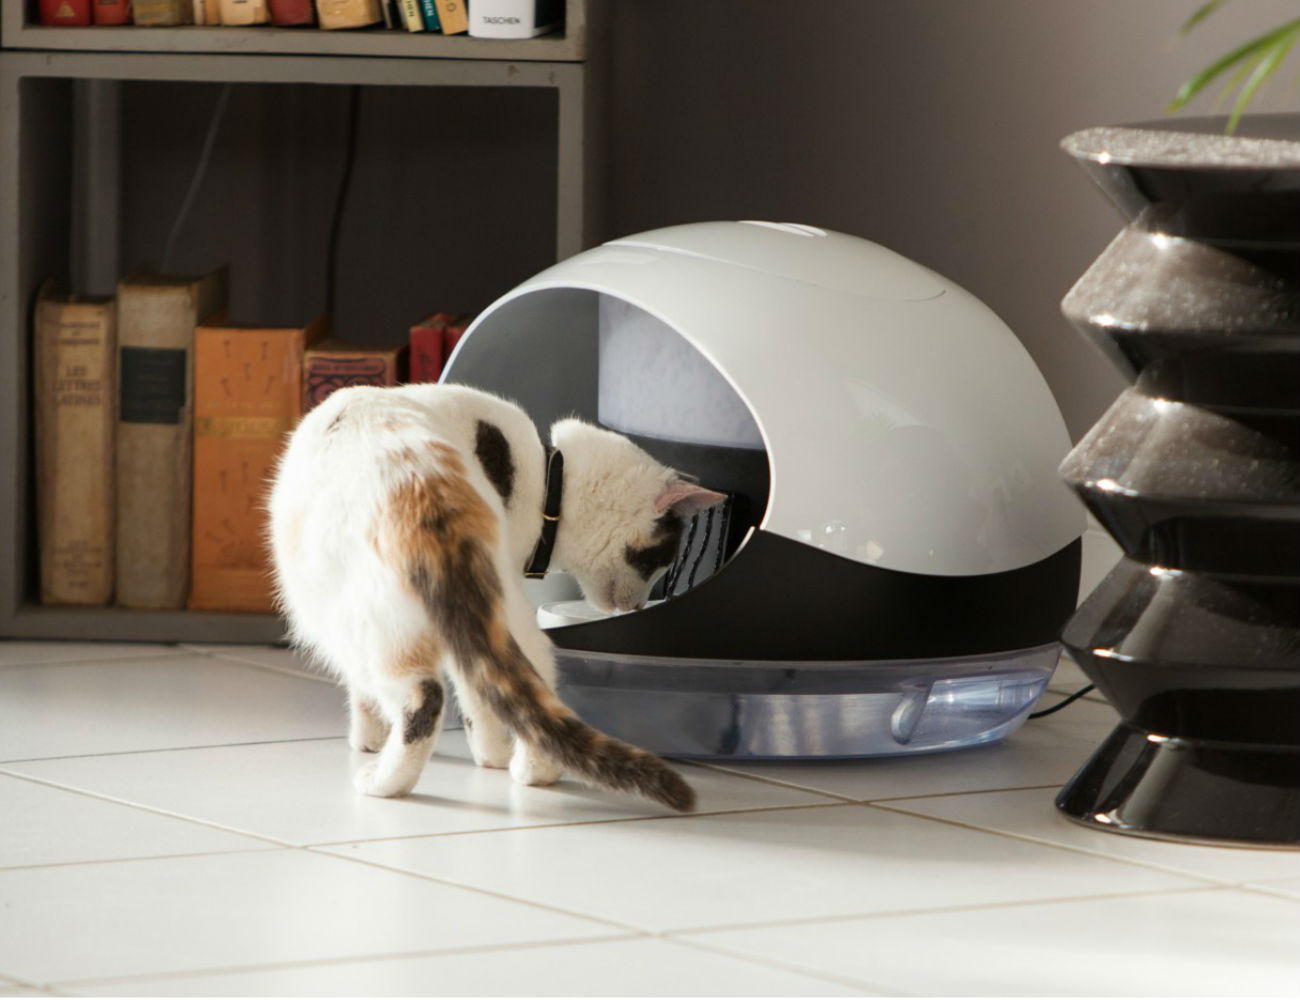 Catspad+Smart+Food+And+Water+Dispenser+For+Cats